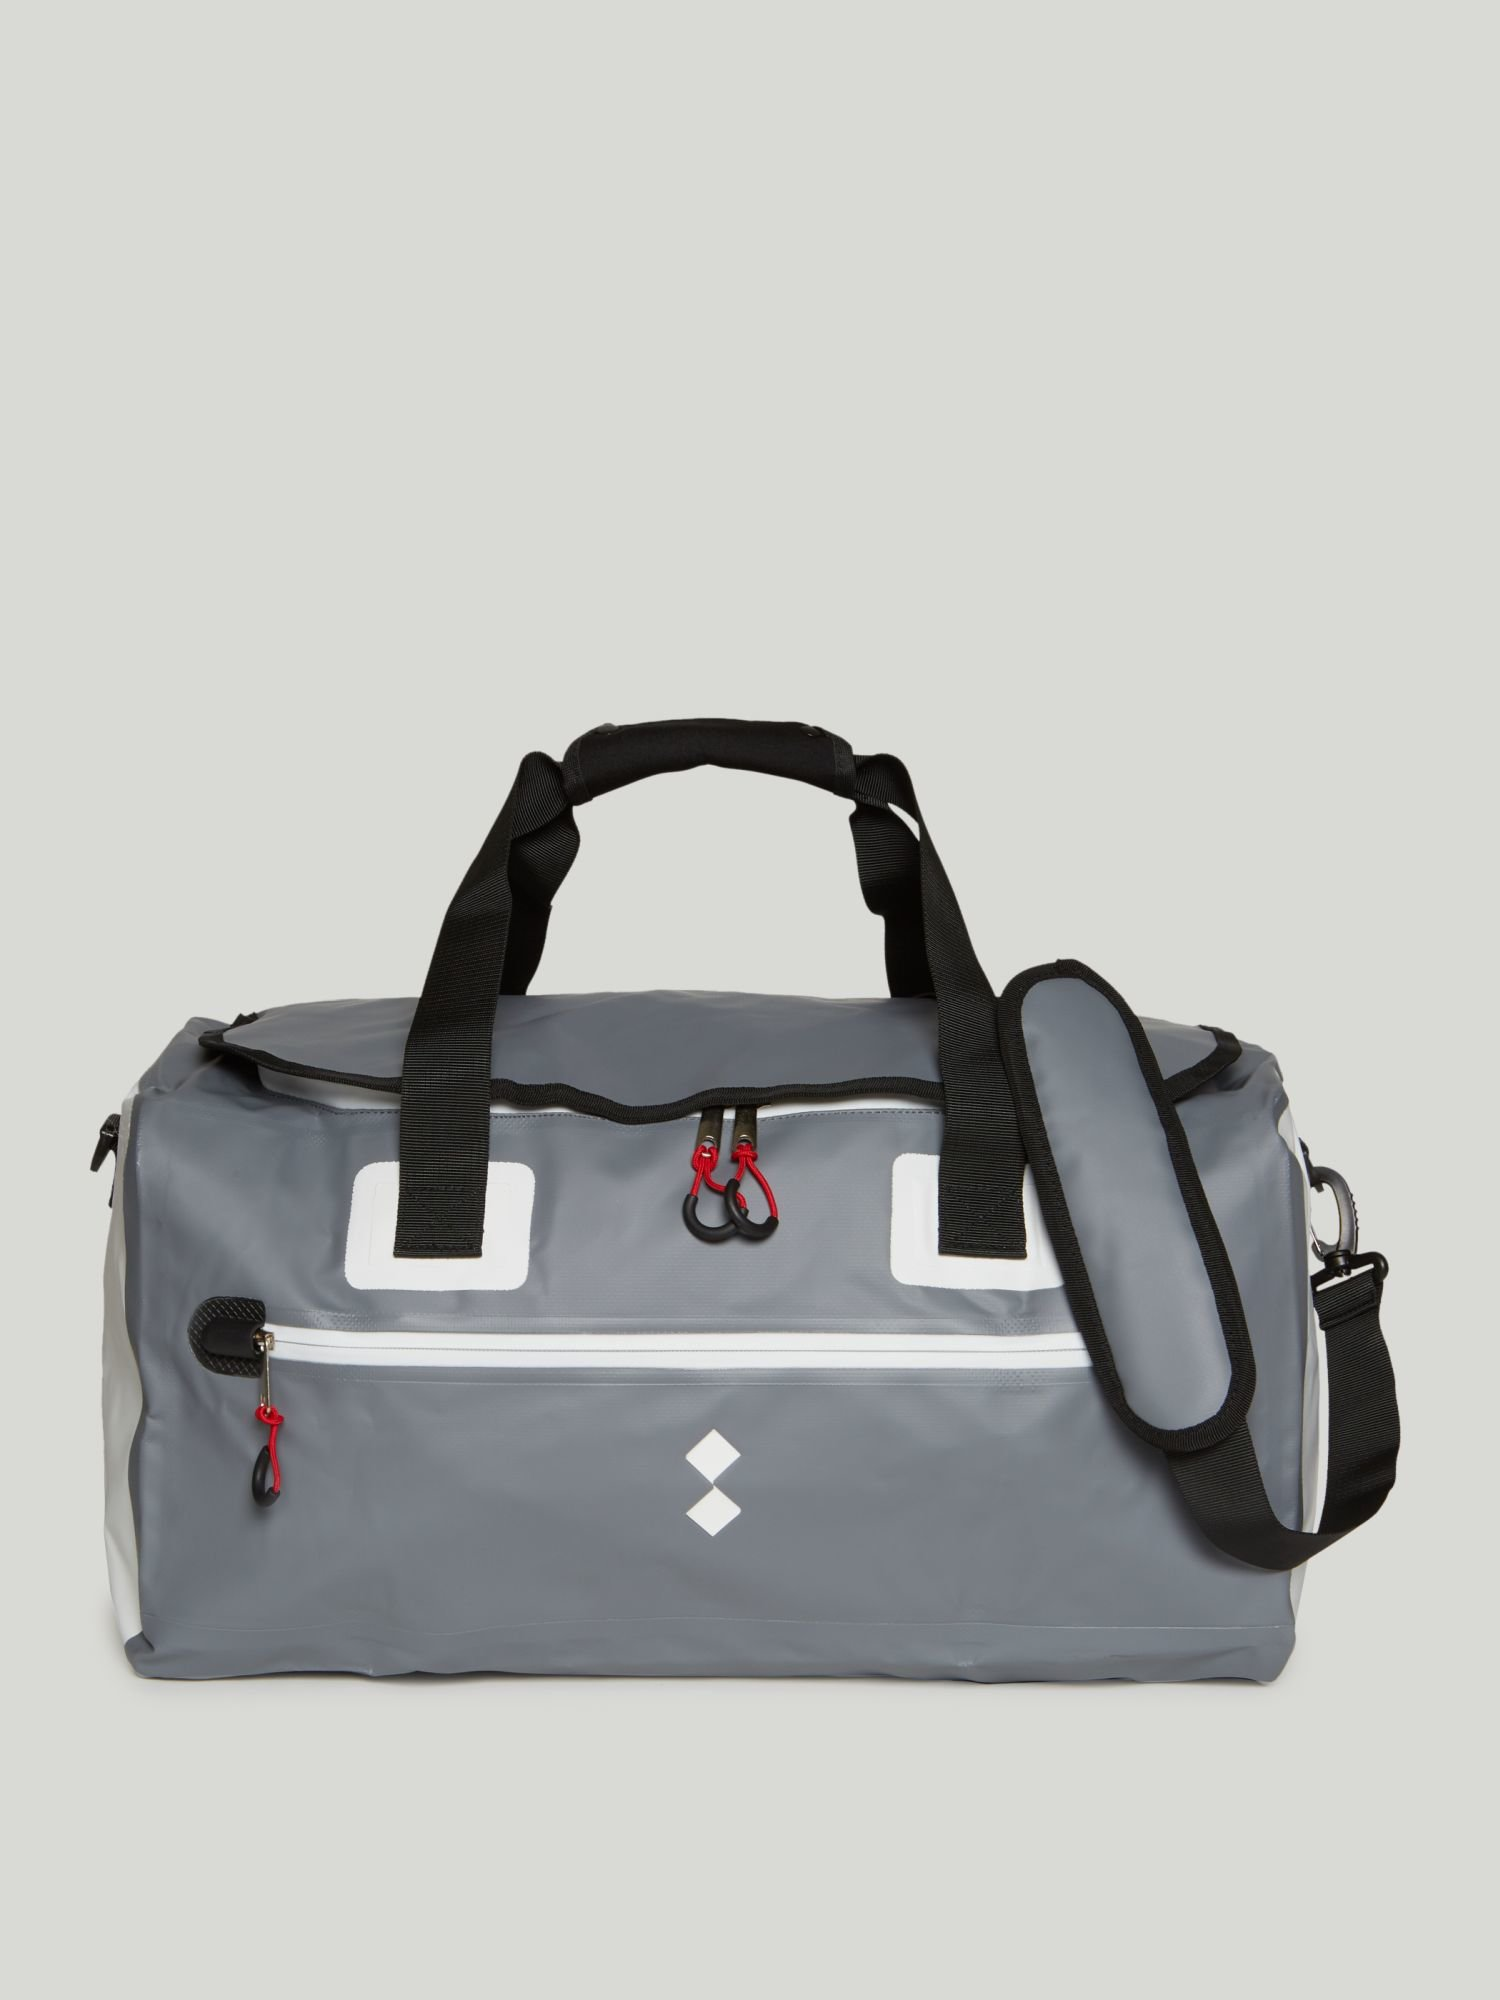 Wr Bag 4 Evo - Grey Shark